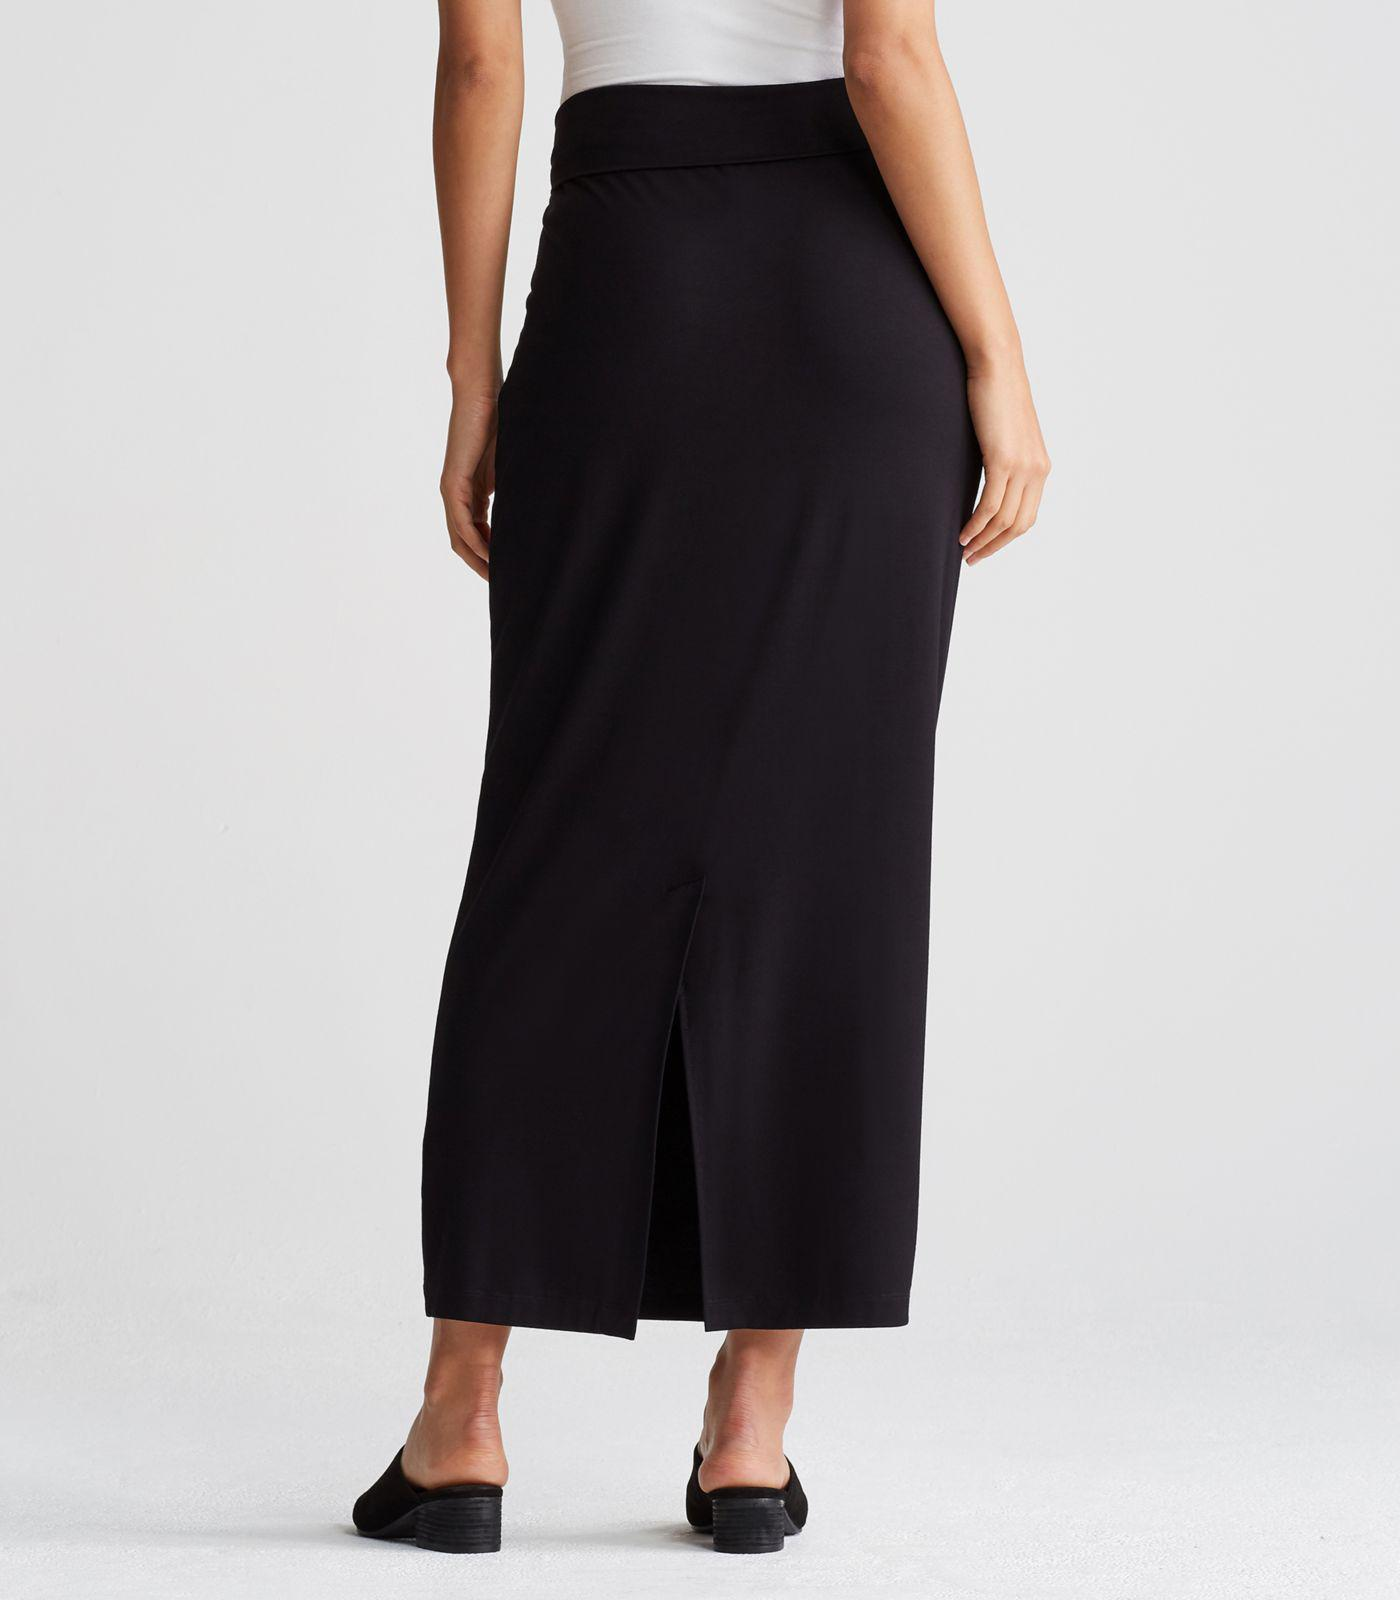 e1766fc4a Eileen Fisher Viscose Jersey Fold-over Maxi Pencil Skirt in Black - Lyst